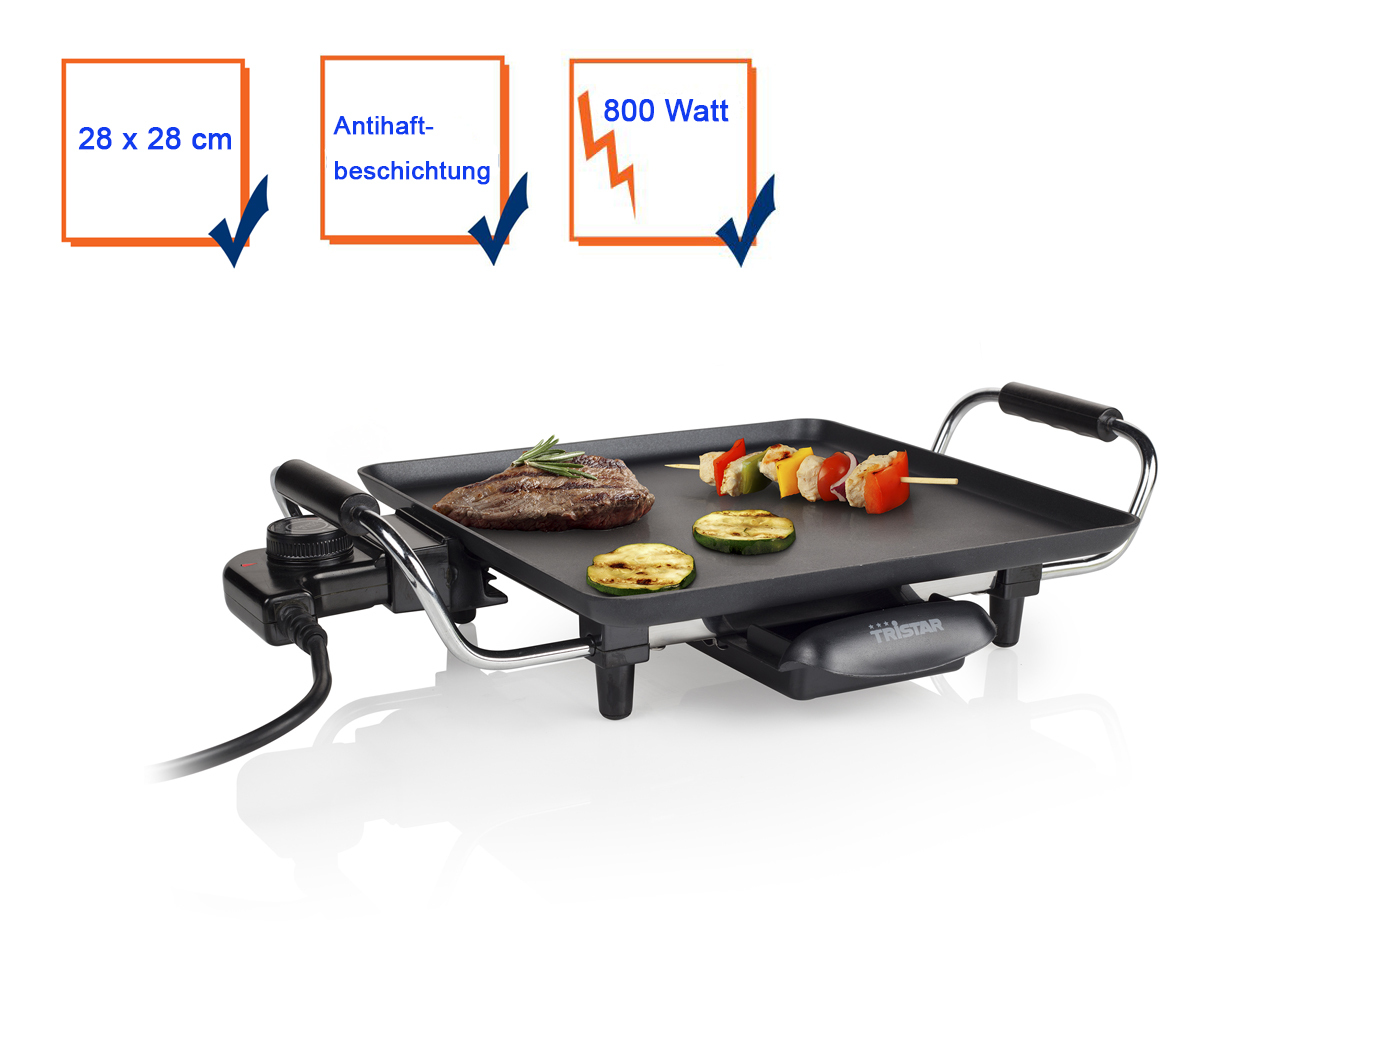 familien teppanyaki grillplatte xl multi tischgrill elektro balkongrill 800w ebay. Black Bedroom Furniture Sets. Home Design Ideas